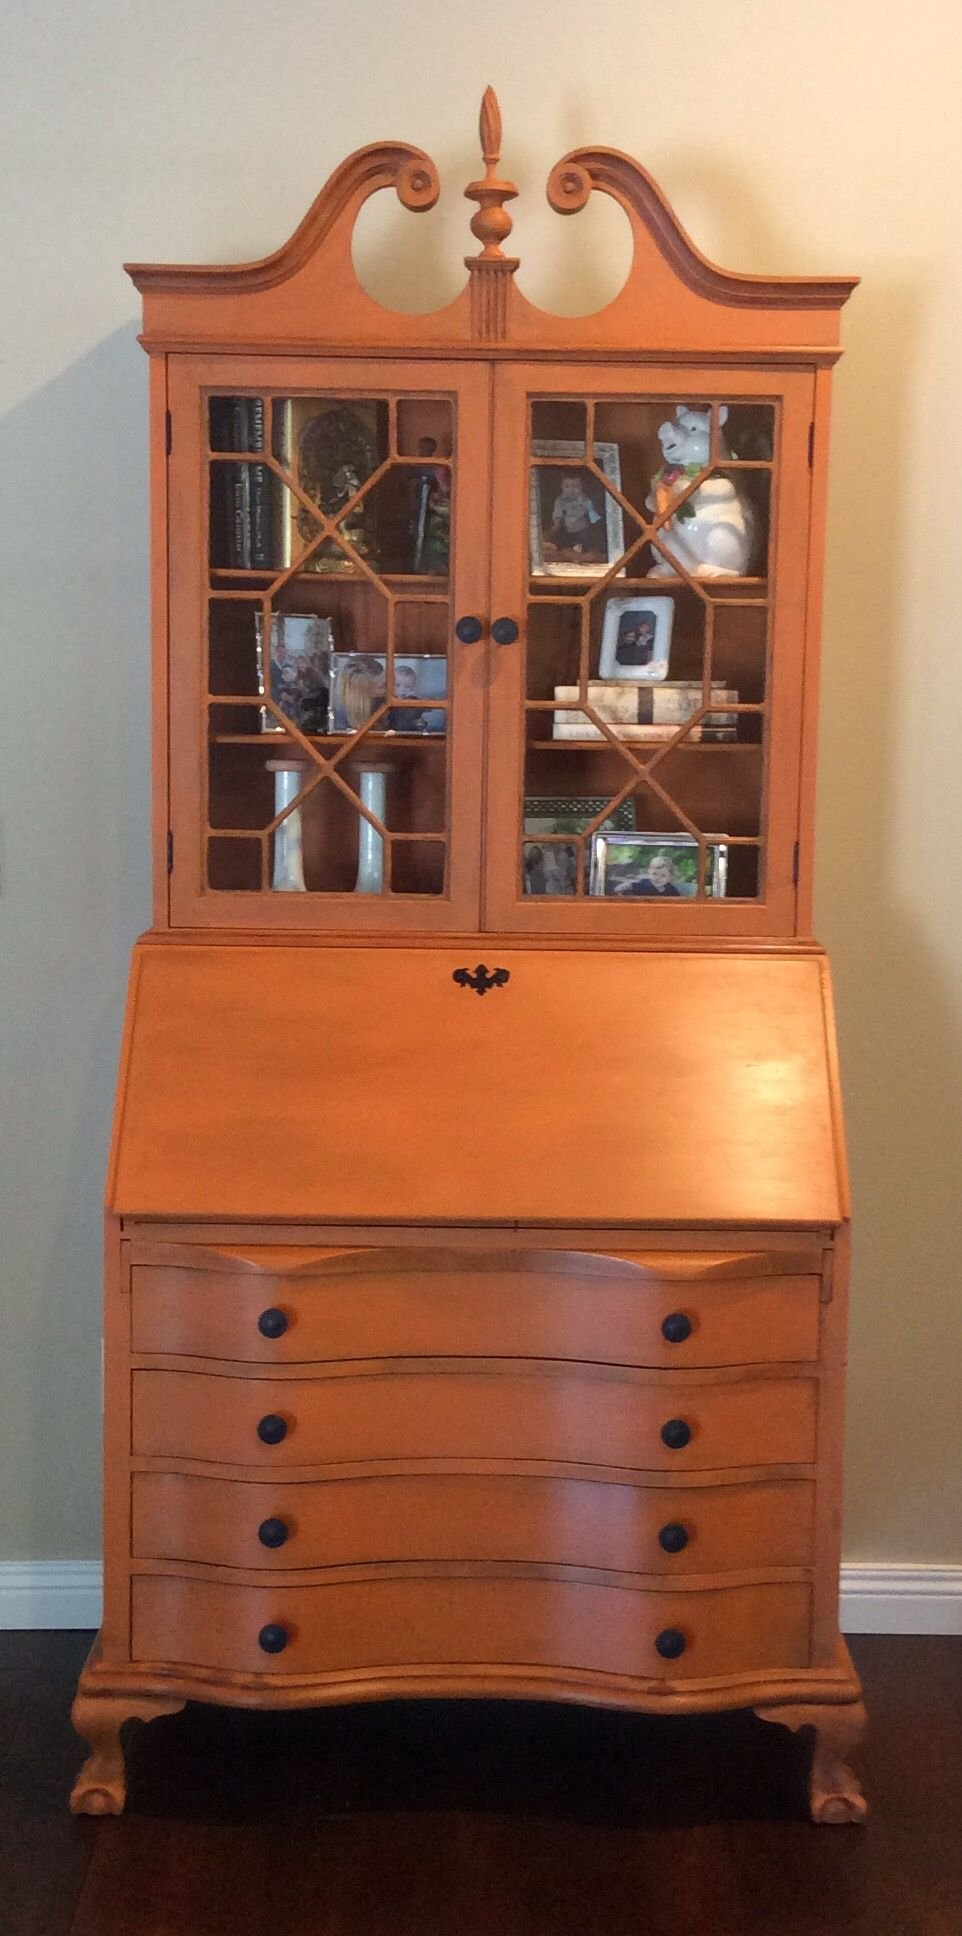 Annie Sloan Barcelona Orange Chalk Paint Dark Wax Knotty Pine Cabinets